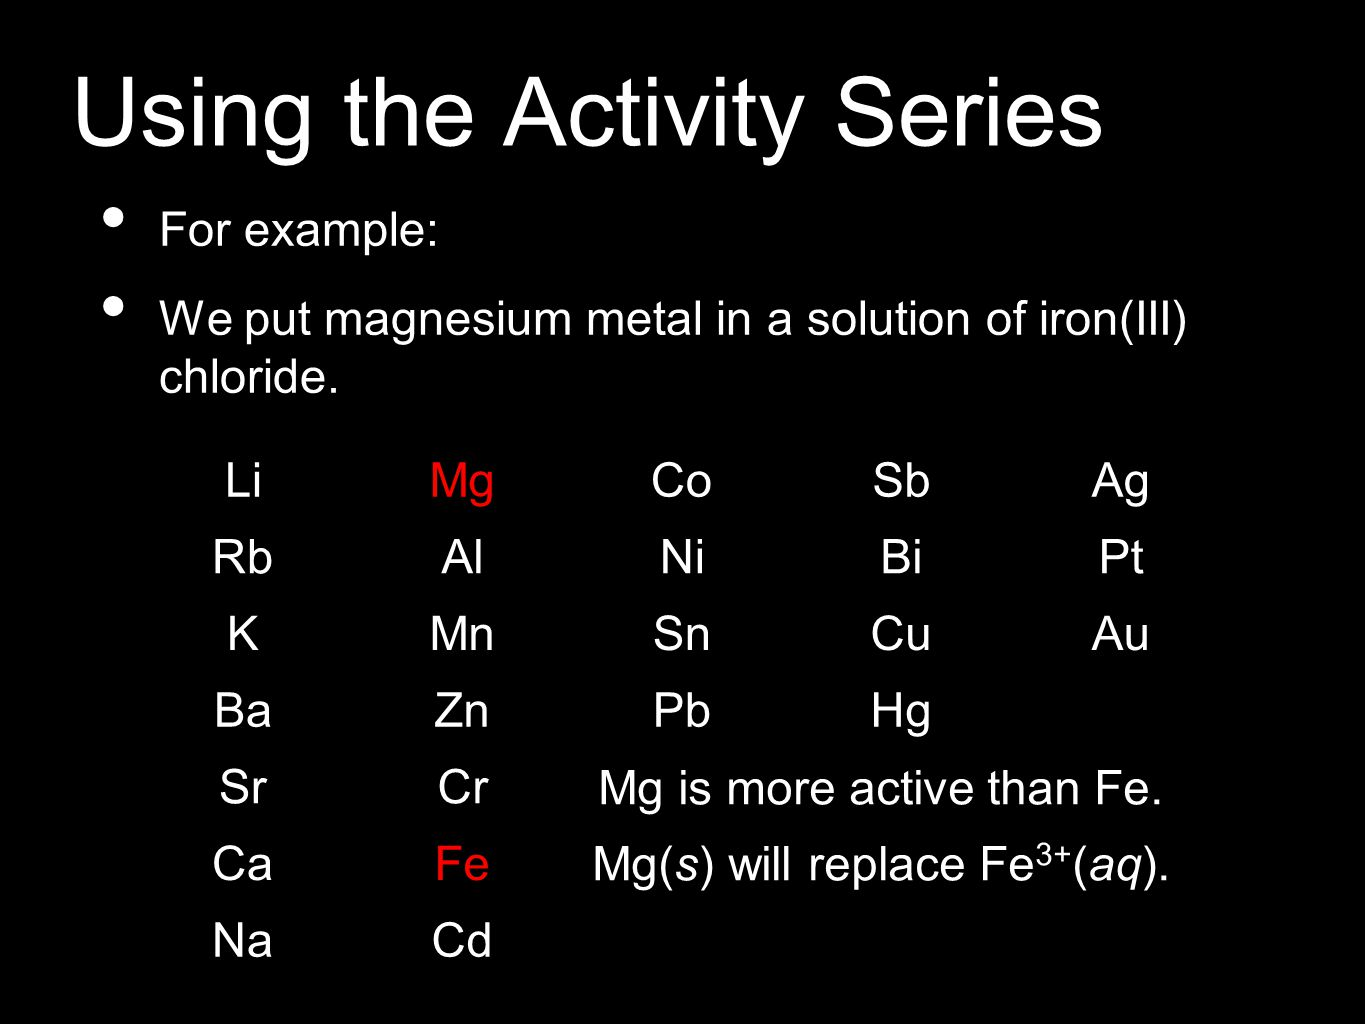 Using the Activity Series